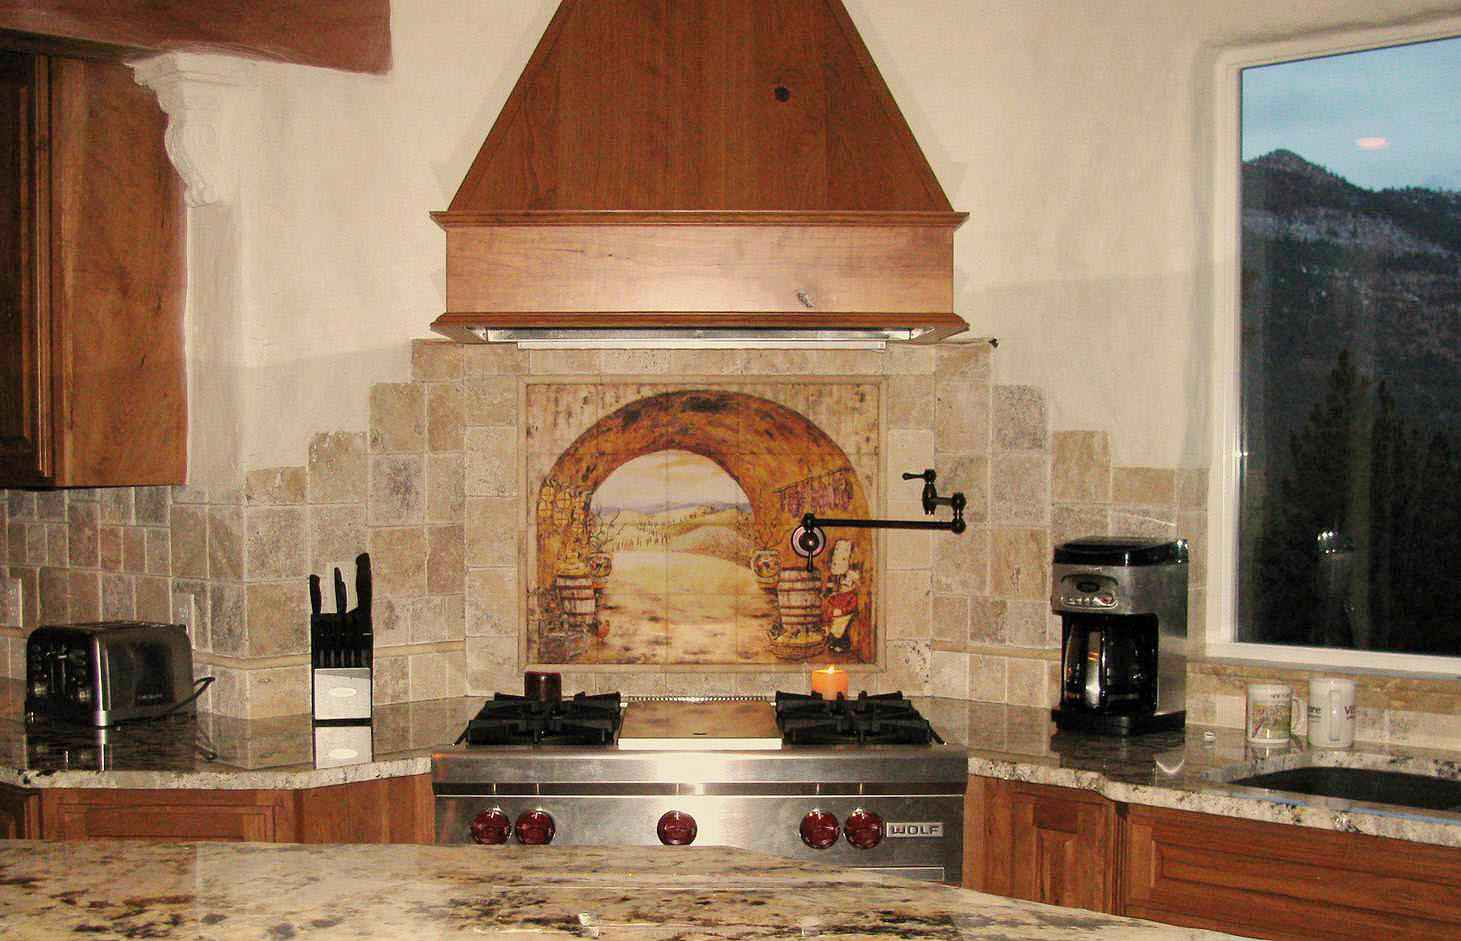 Backsplash design ideas for your kitchen Kitchen backsplash ideas for small kitchens